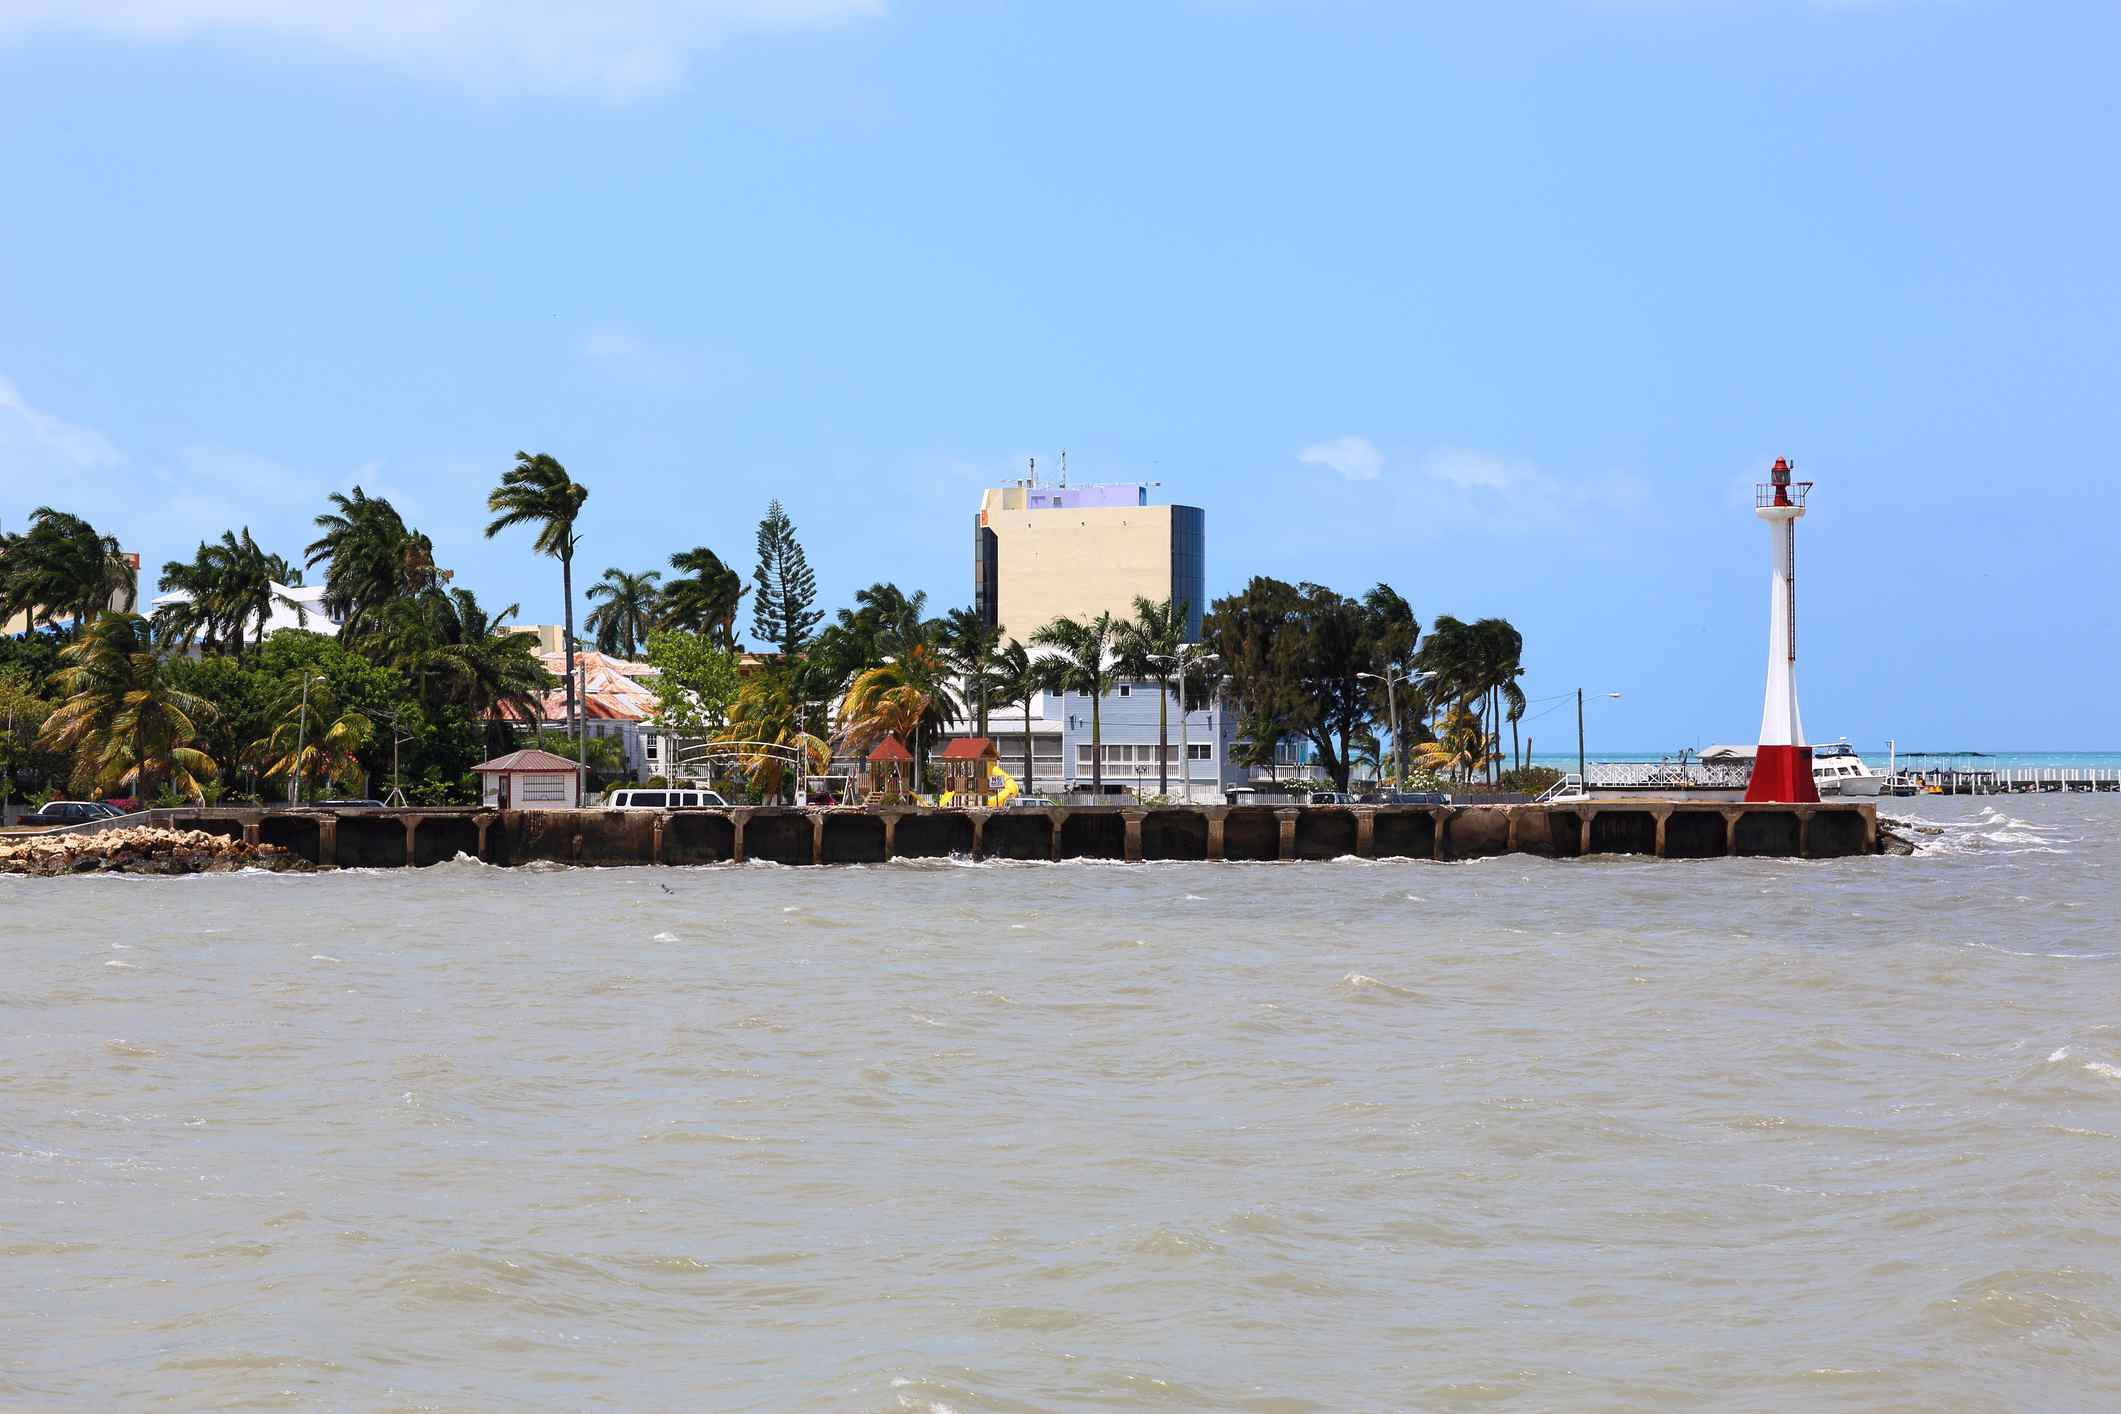 Port of call in Belize City